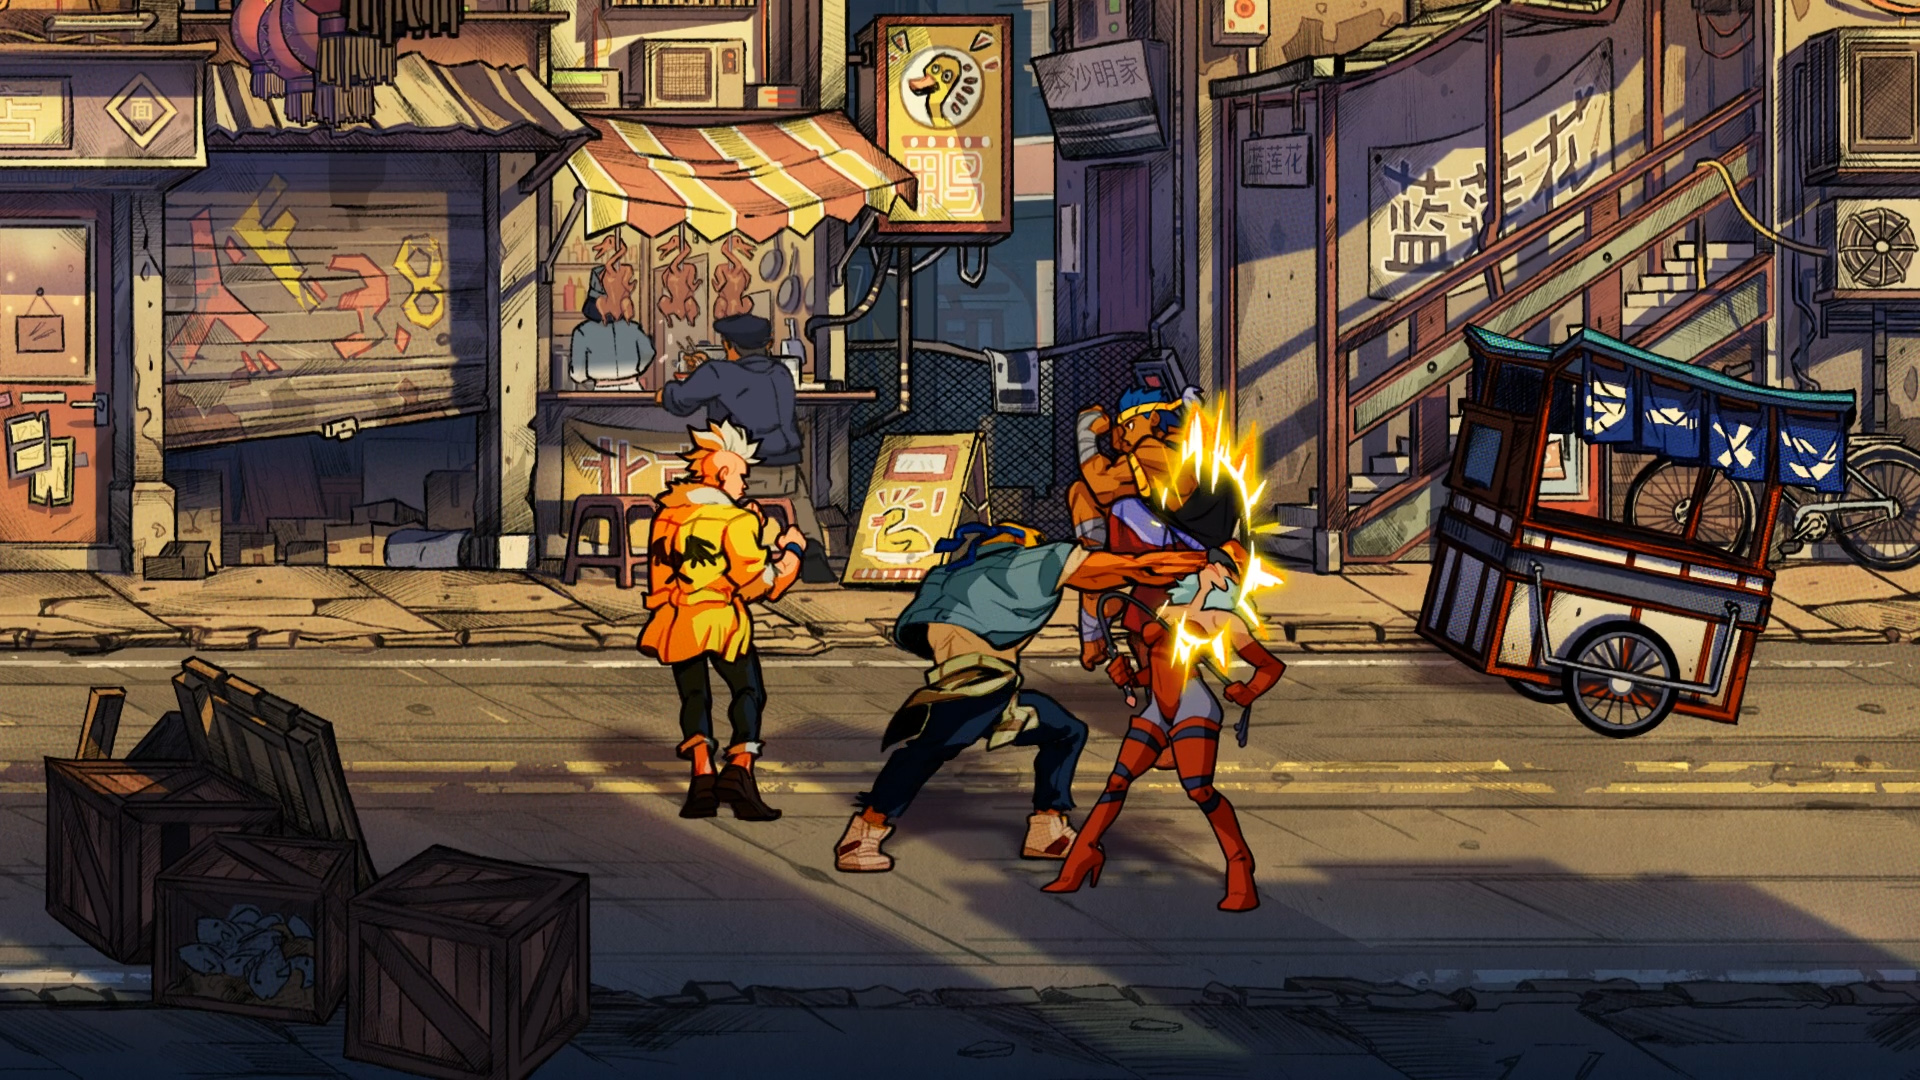 Streets Of Rage 4 Is Shaping Up To Be A Worthy Sequel Engadget